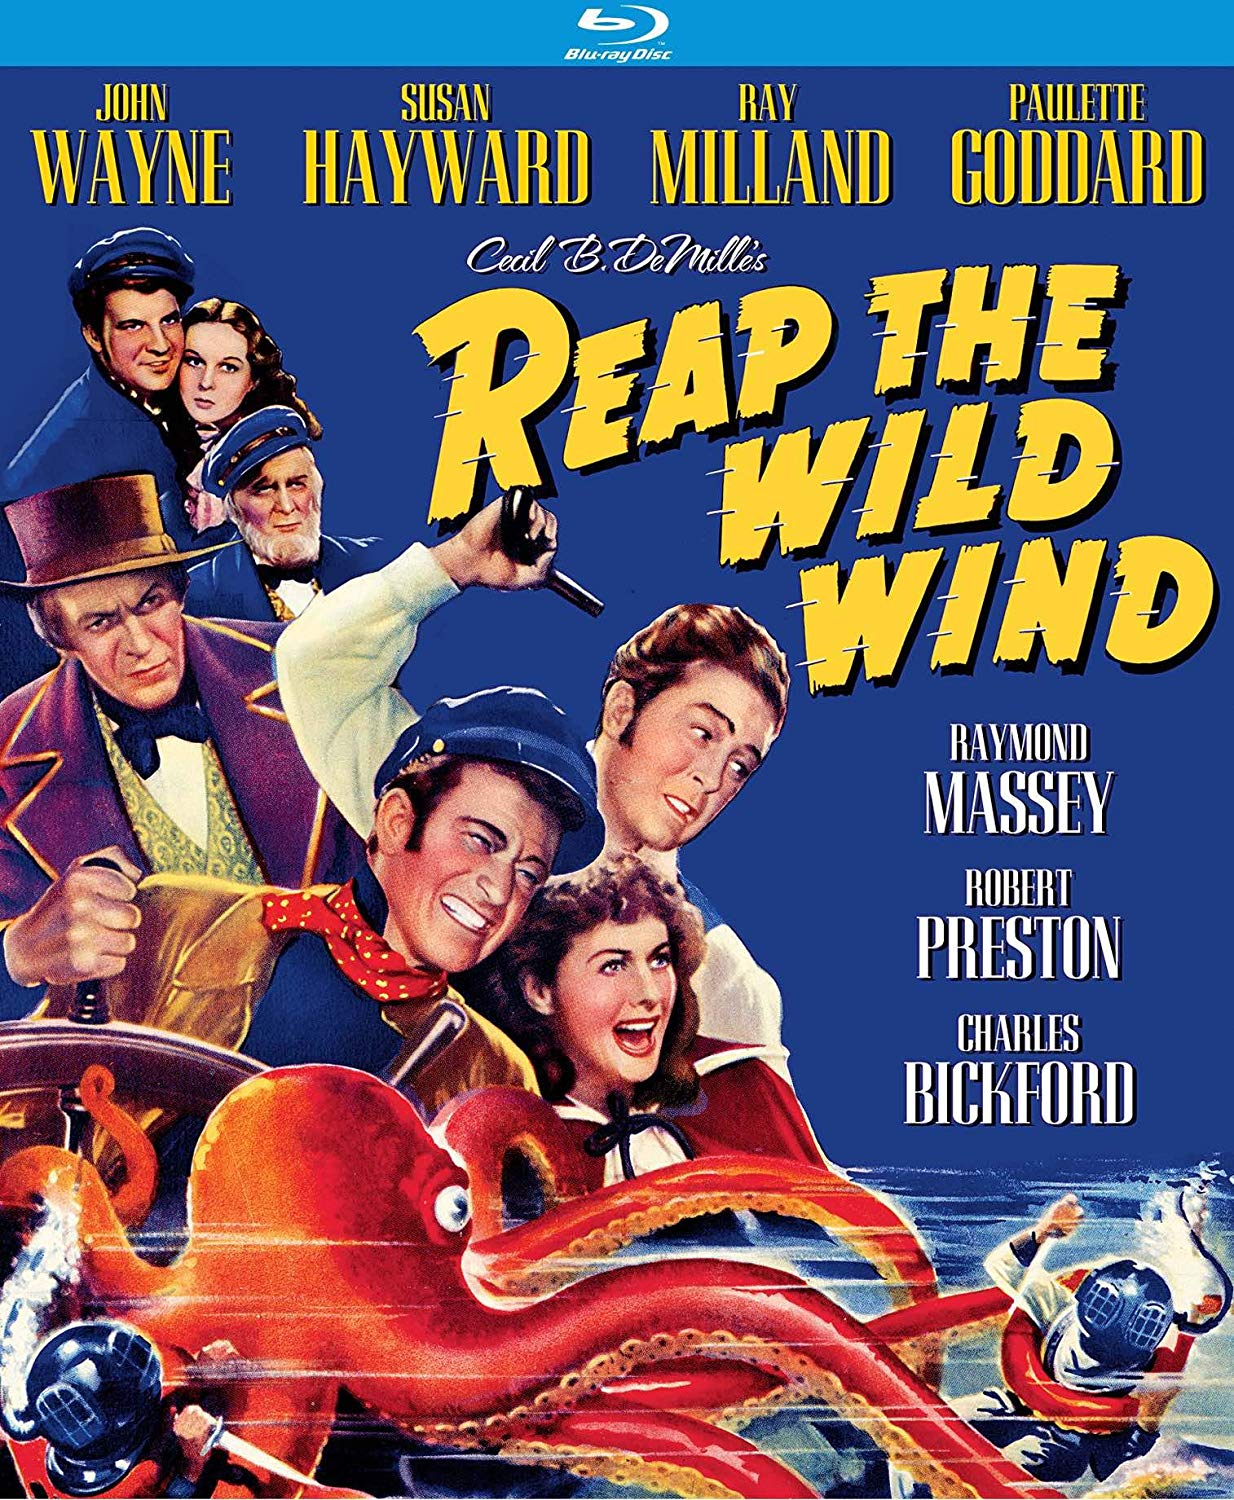 Reap the Wild Wind Blu-ray - Buy at Amazon